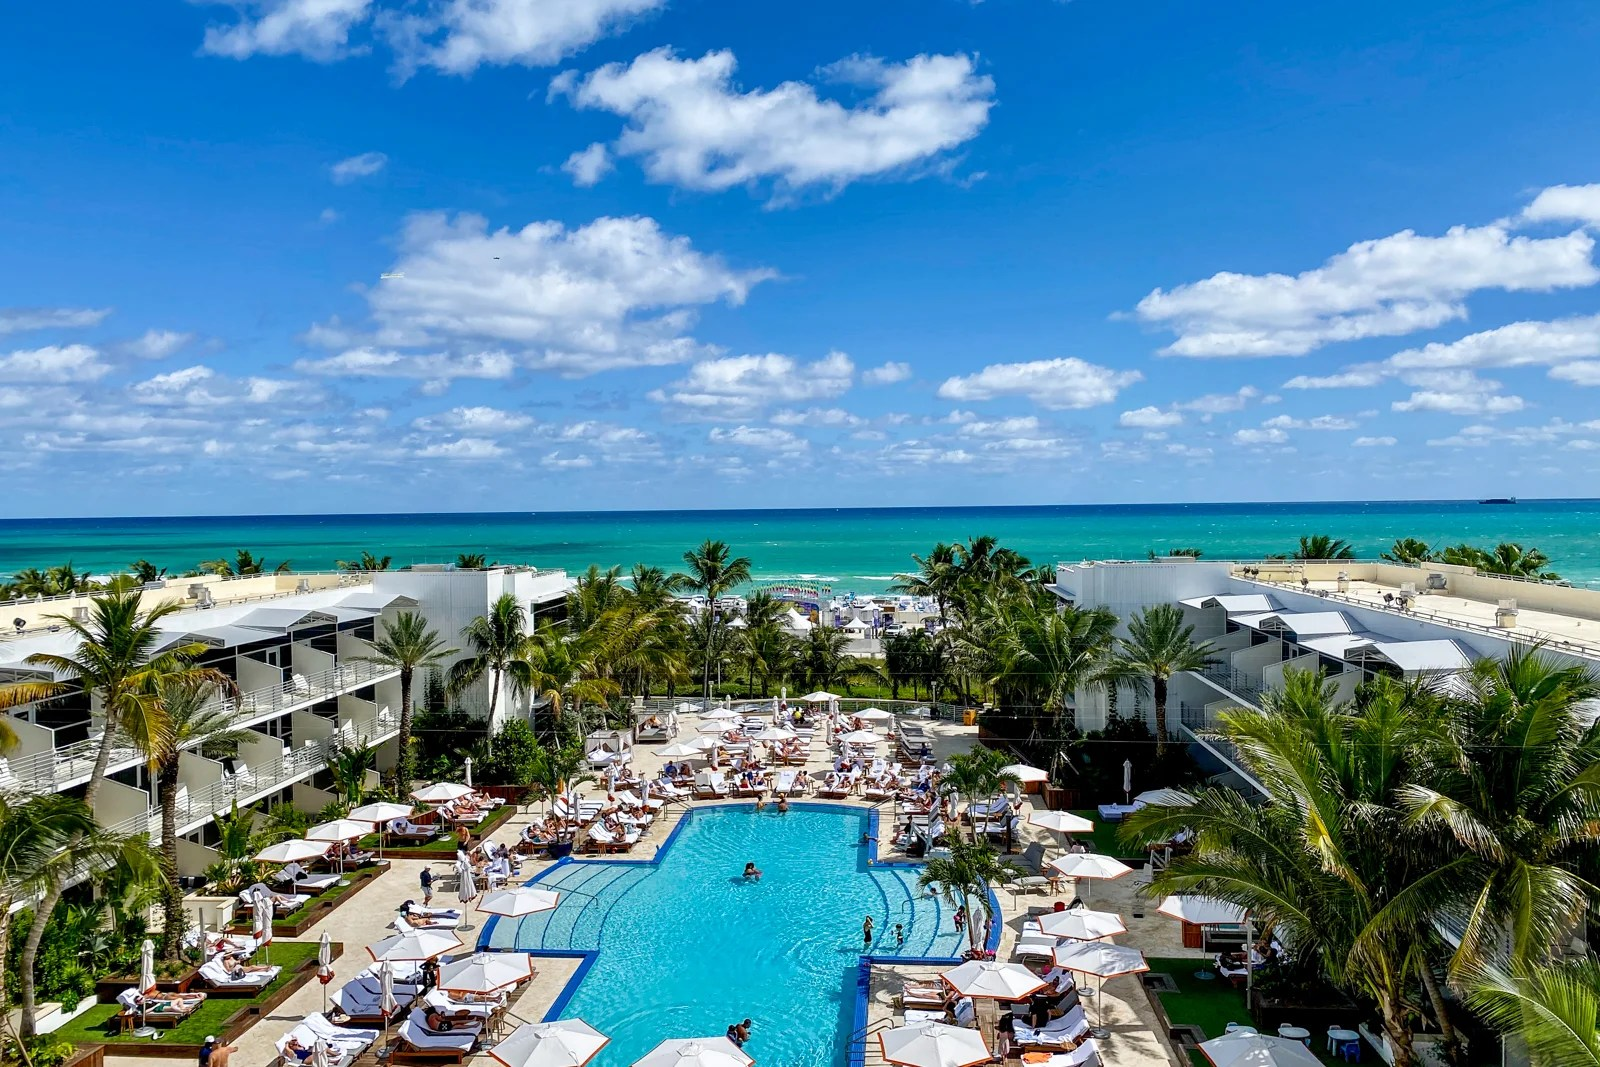 Full review of the reopened Ritz-Carlton, South Beach